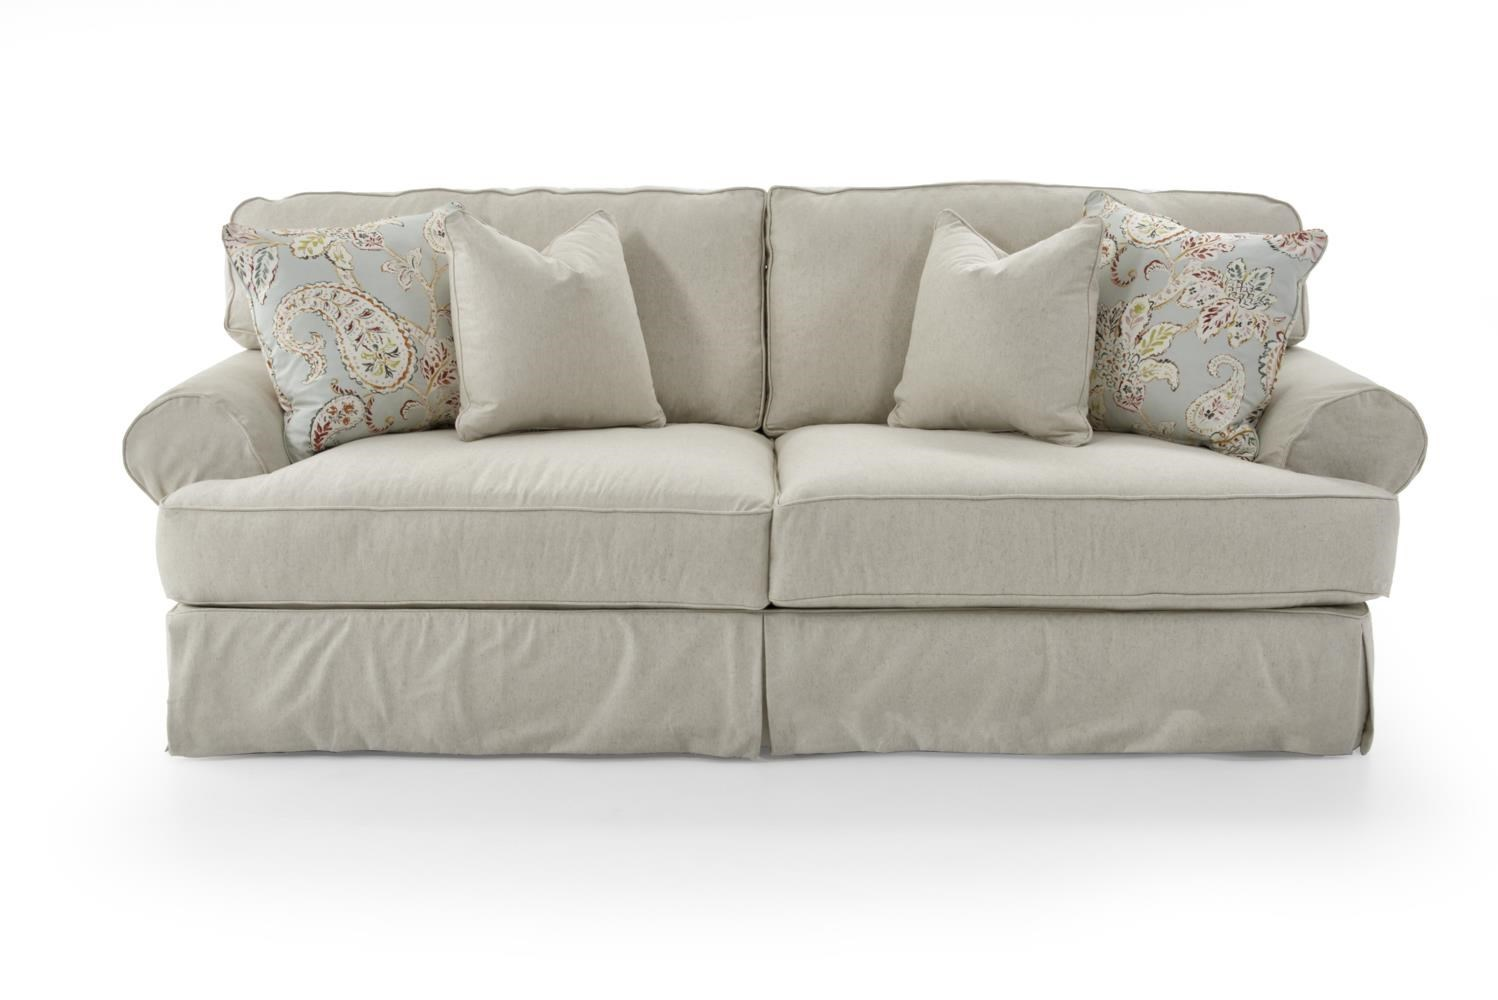 Rowe Addison Traditional 2 Seat Sofa With Slipcover ...